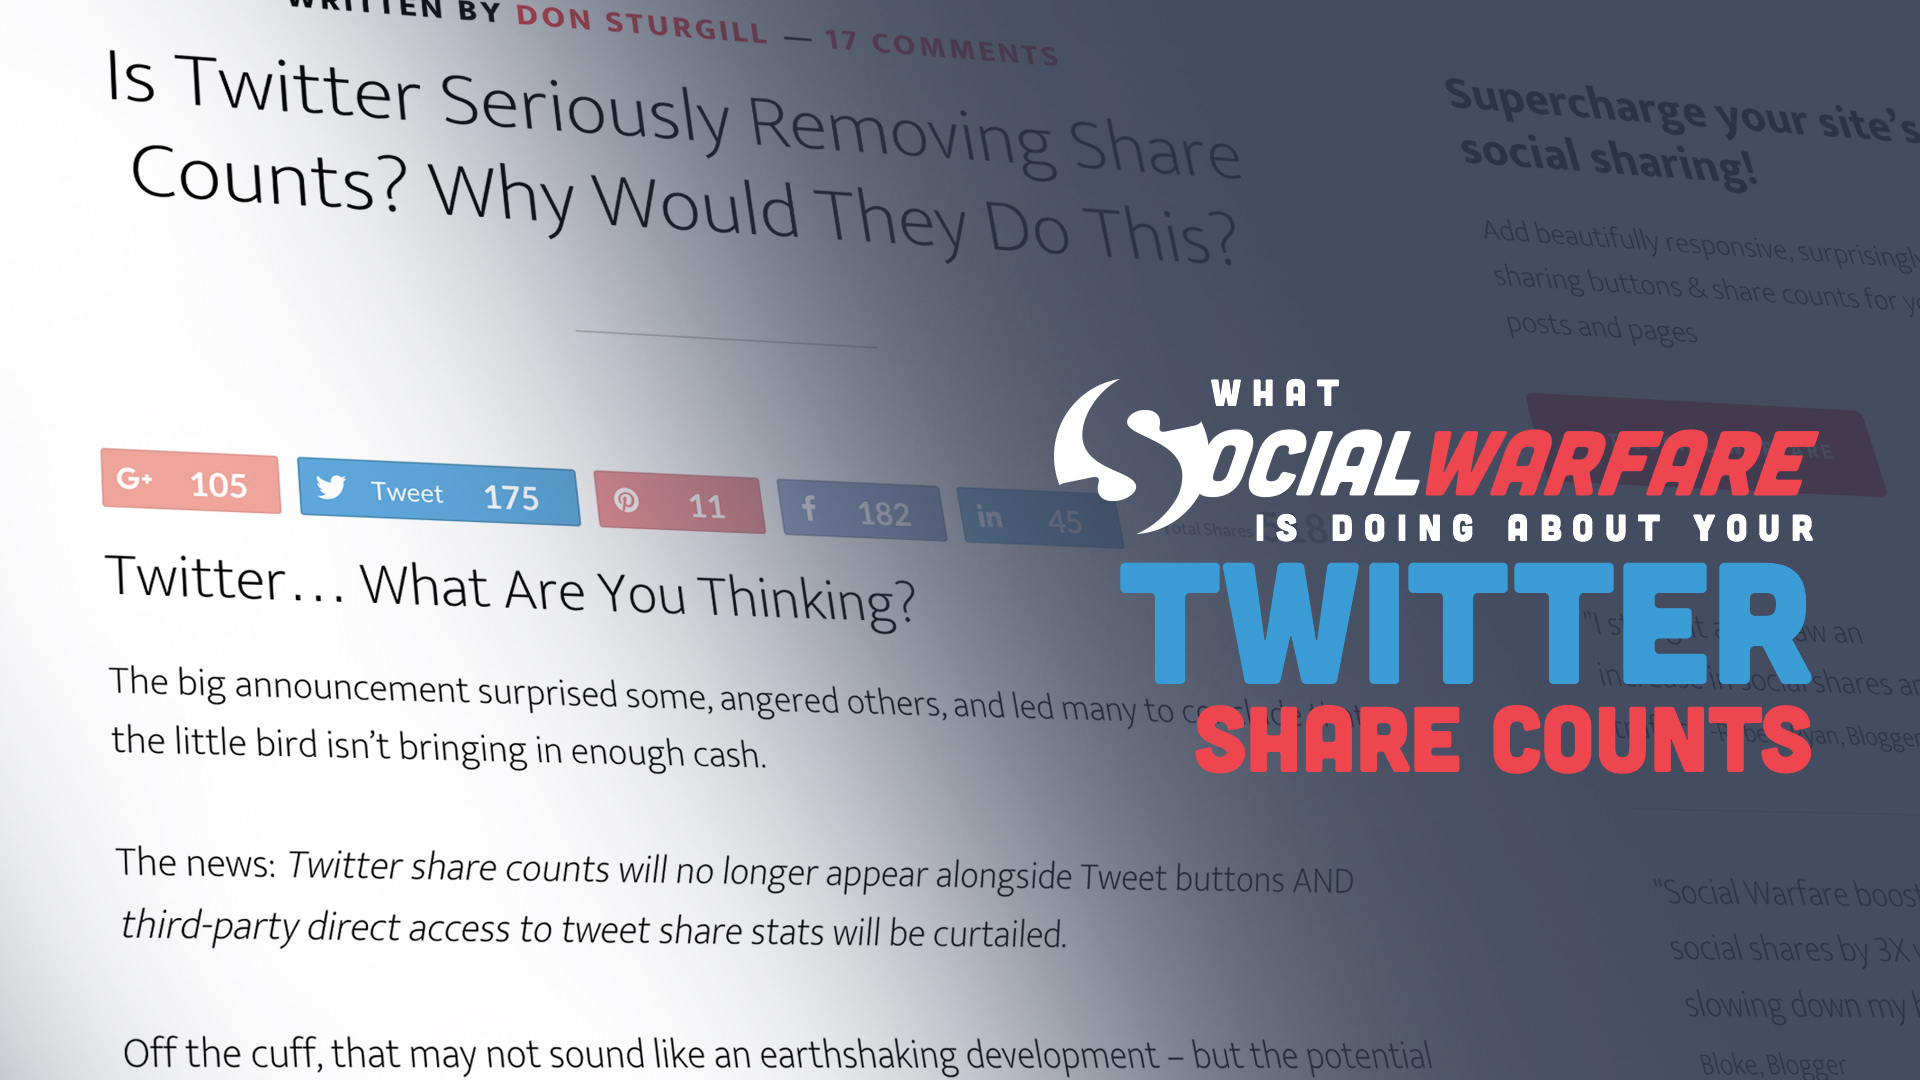 what we're doing about twitter share counts